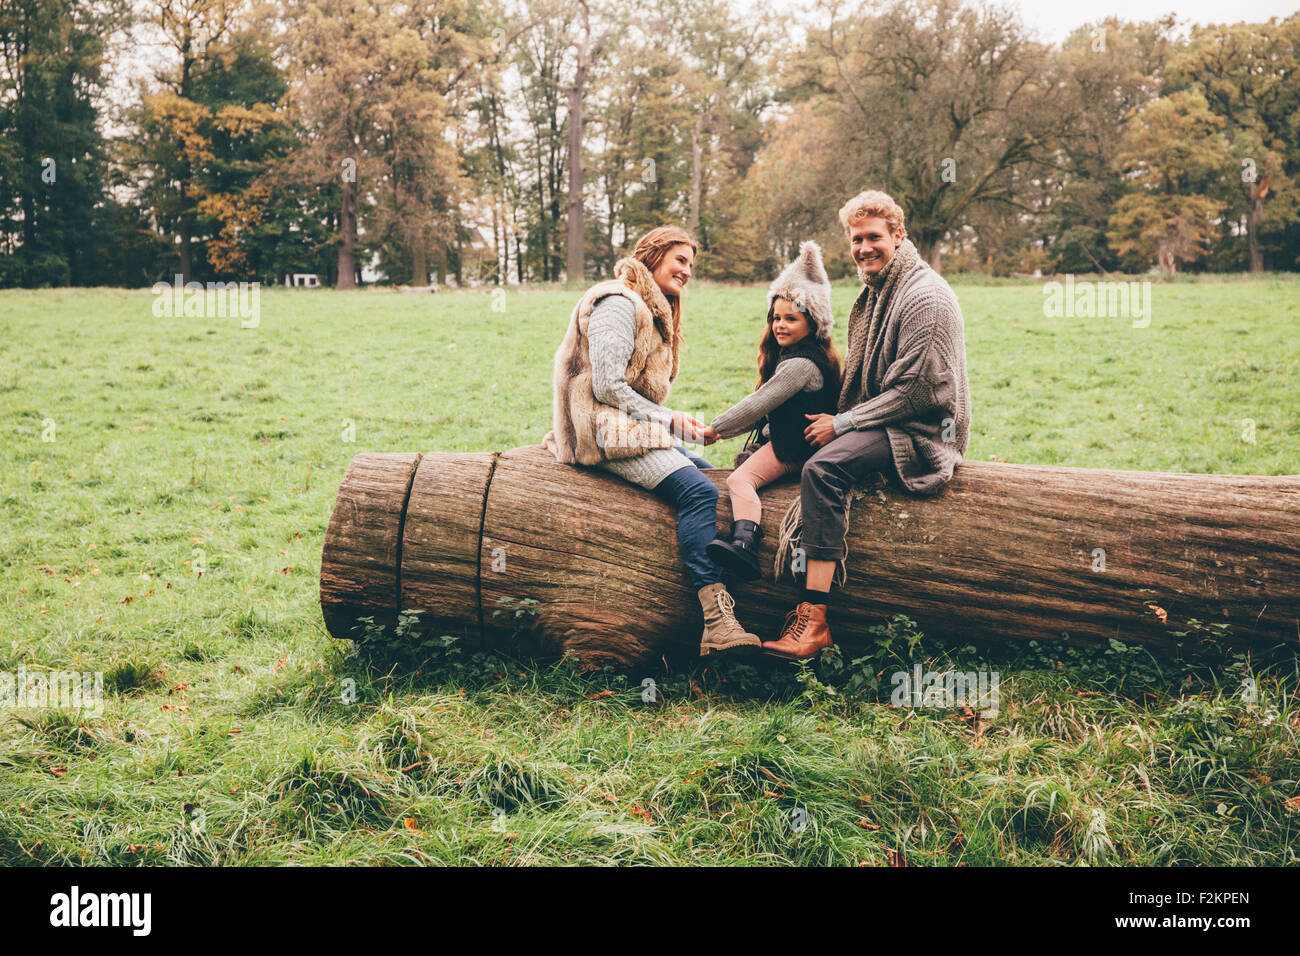 Happy family spending time together in an autumnal park - Stock Image